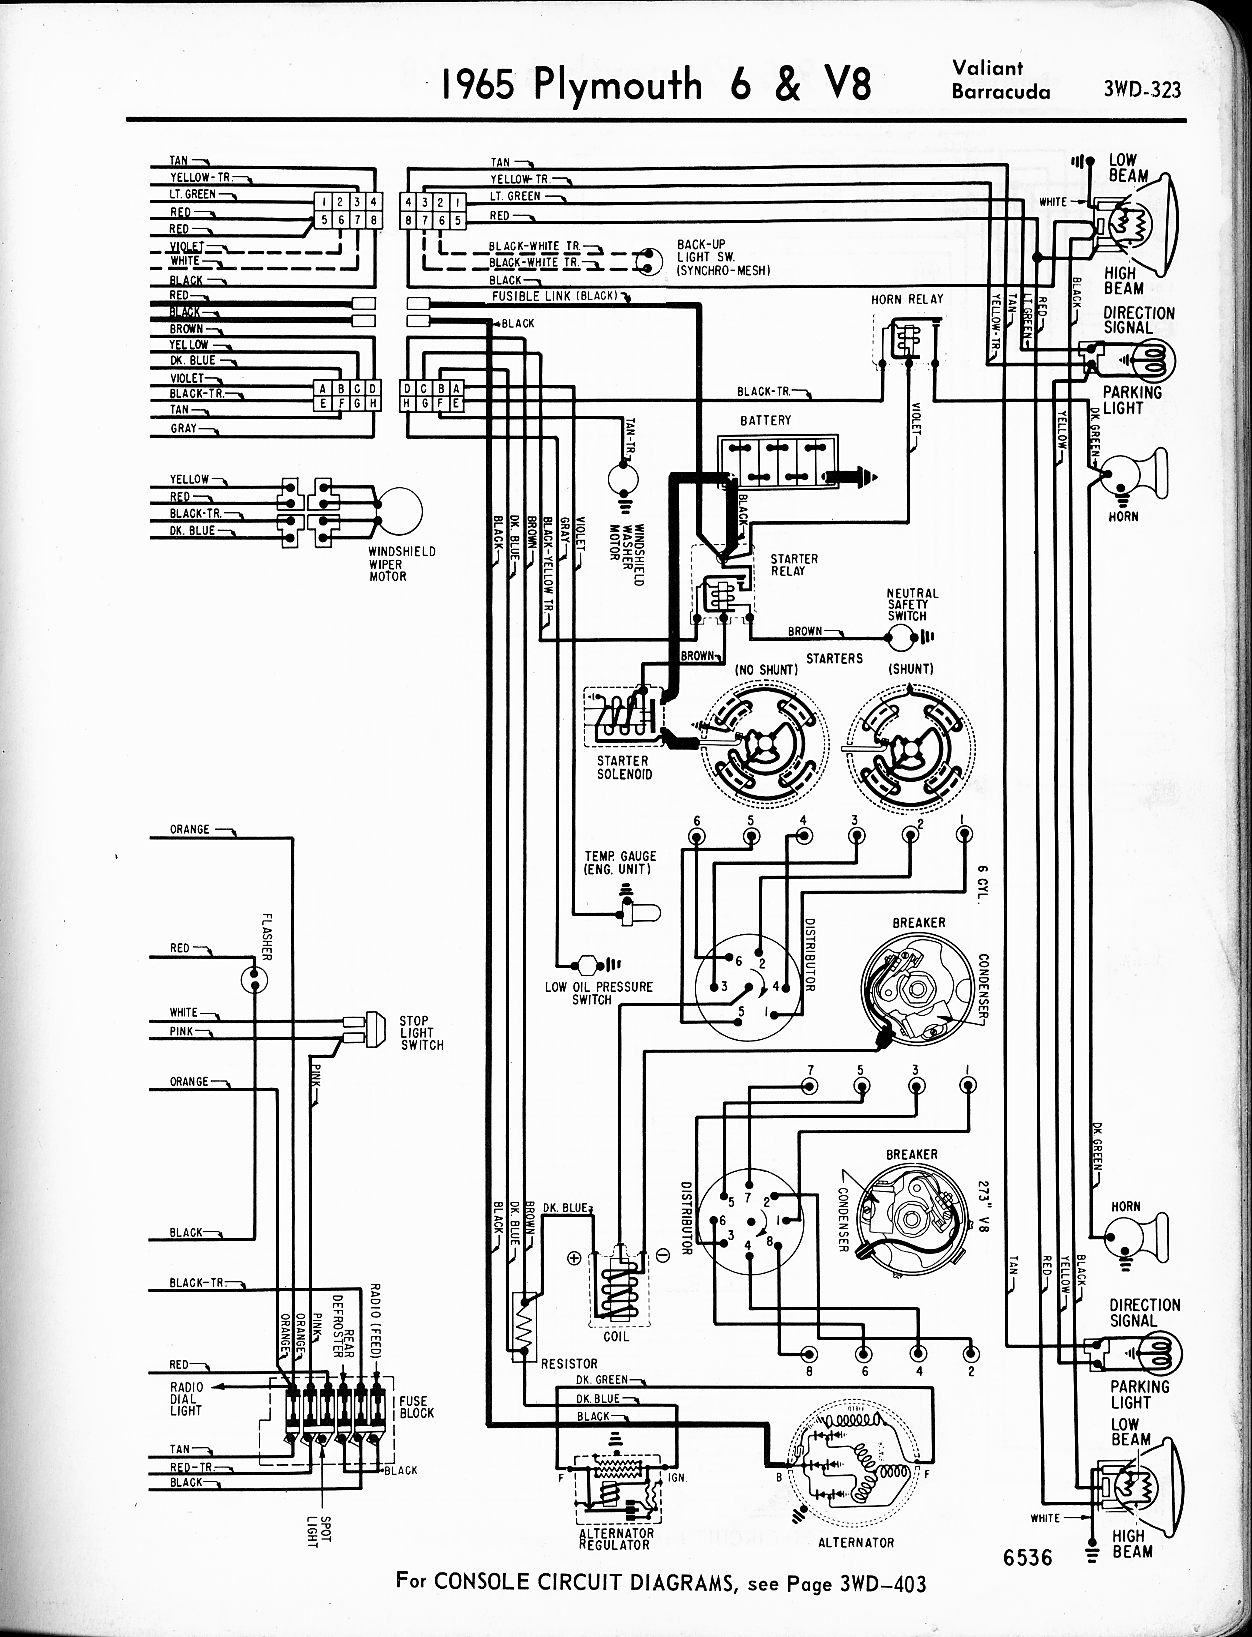 Miraculous 1965 Ply Barracuda Wiring Diagram Wiring Diagram Wiring 101 Capemaxxcnl